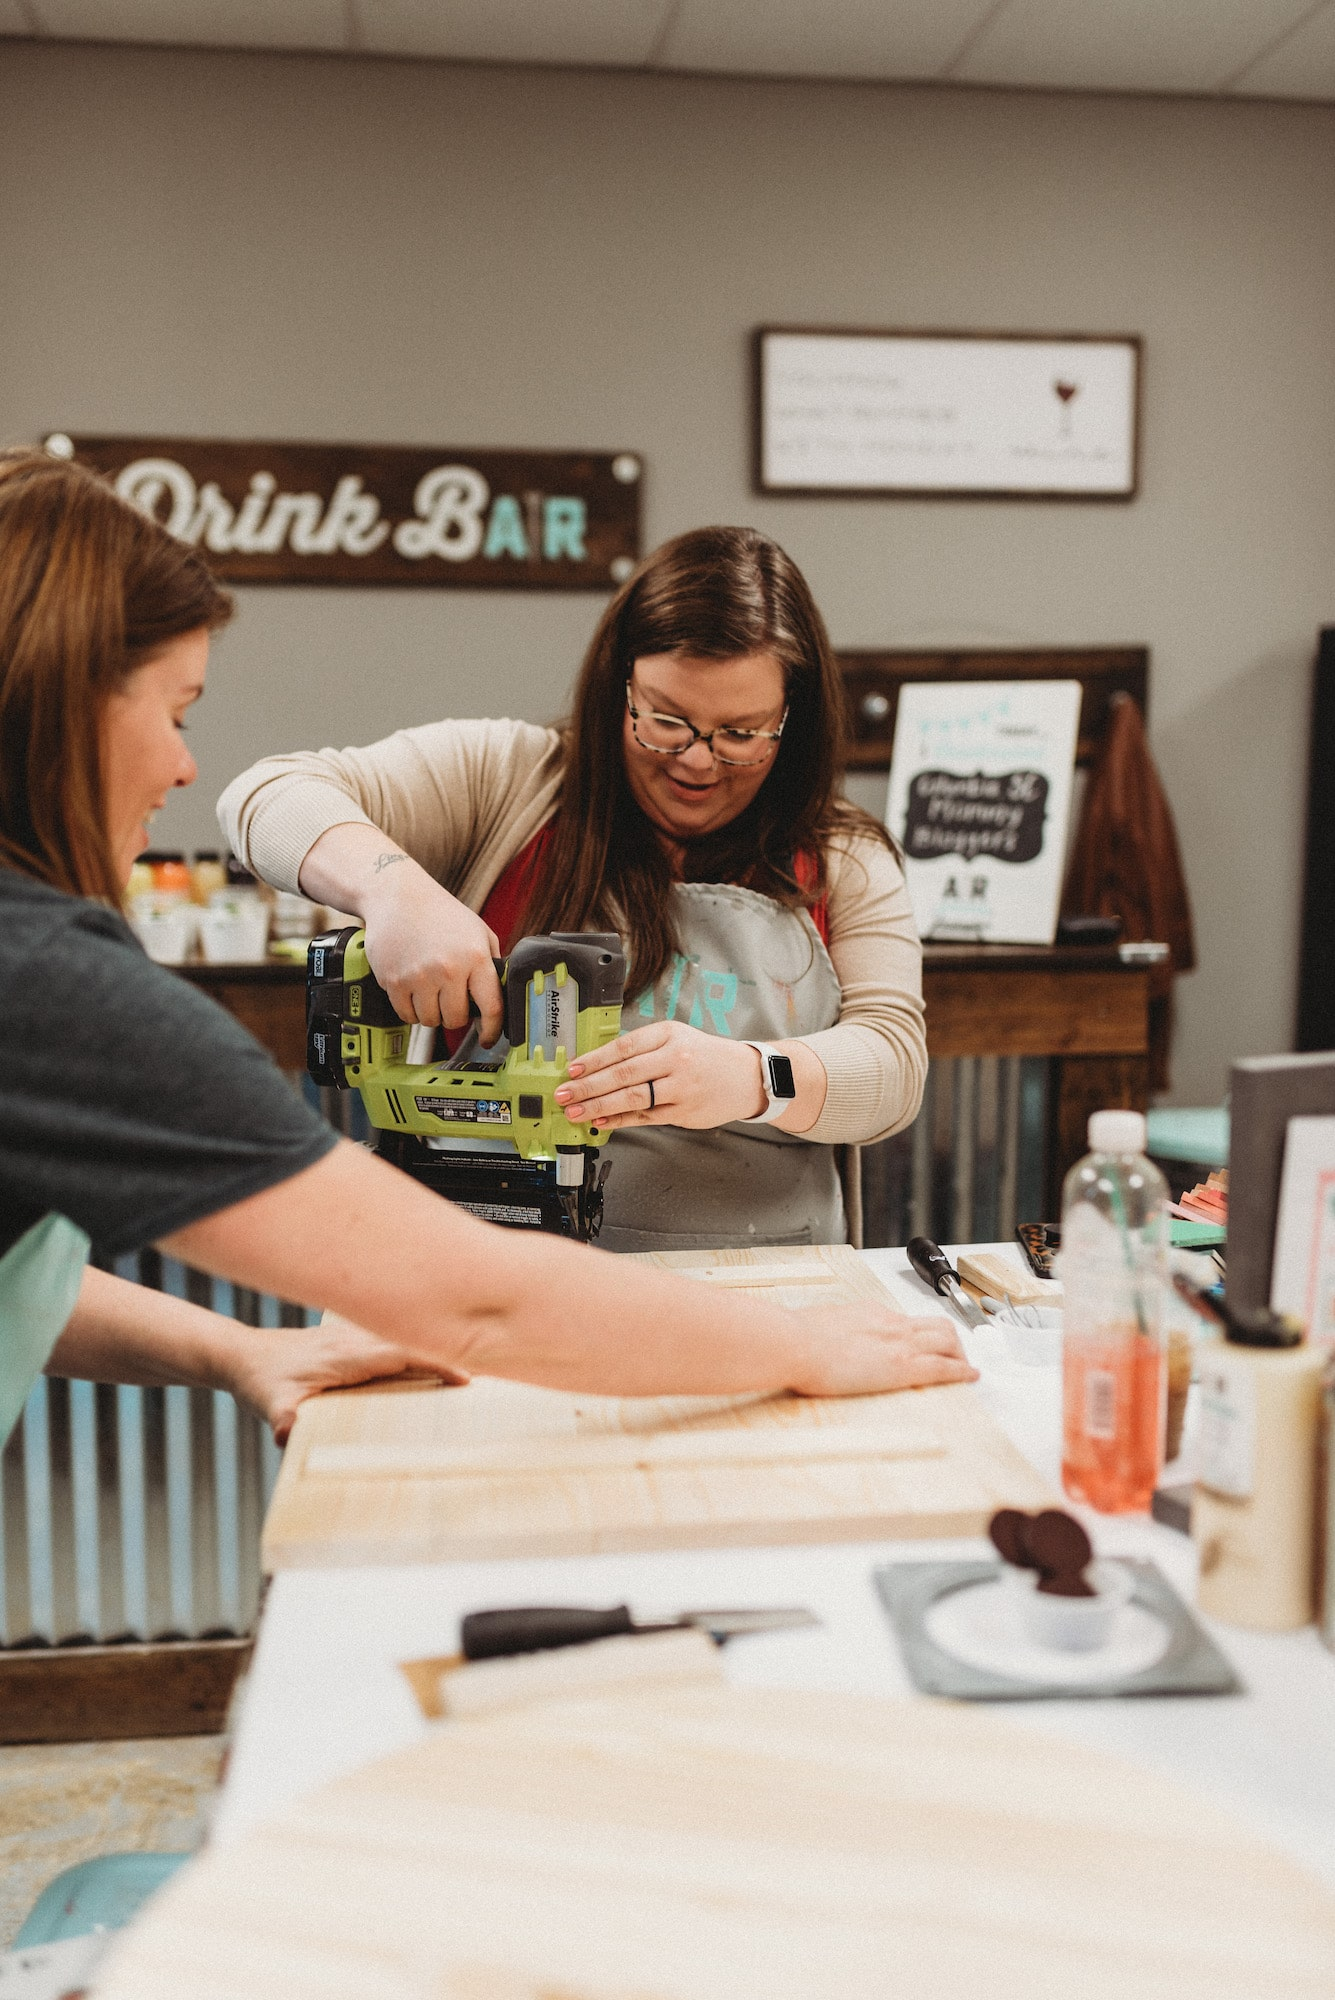 while it's tempting to get all dressed up for a girls' night out, keep in mind you're going to handle wood, paint, and possibly power tools. It's okay to dress down. You'll be wearing an oh-so-stylish AR Workshop-provided smock